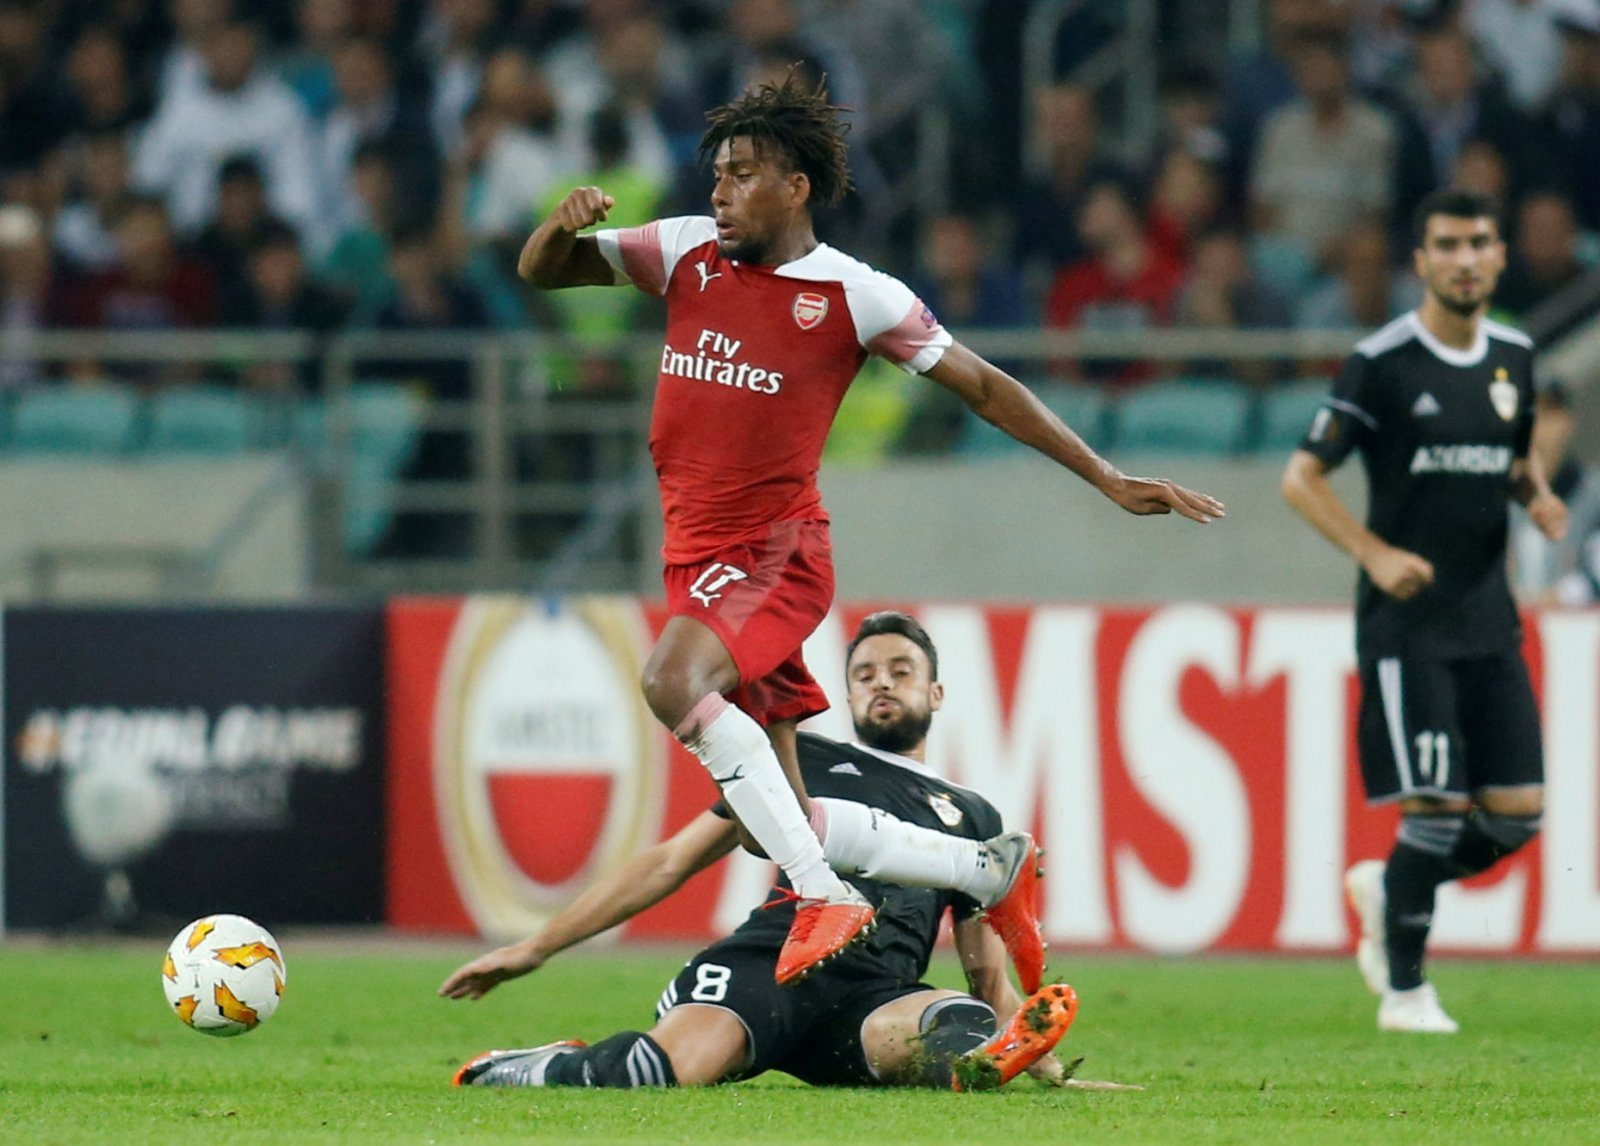 Arsenal fans are spot on: Emery deserves huge credit for Alex Iwobi's resurgence